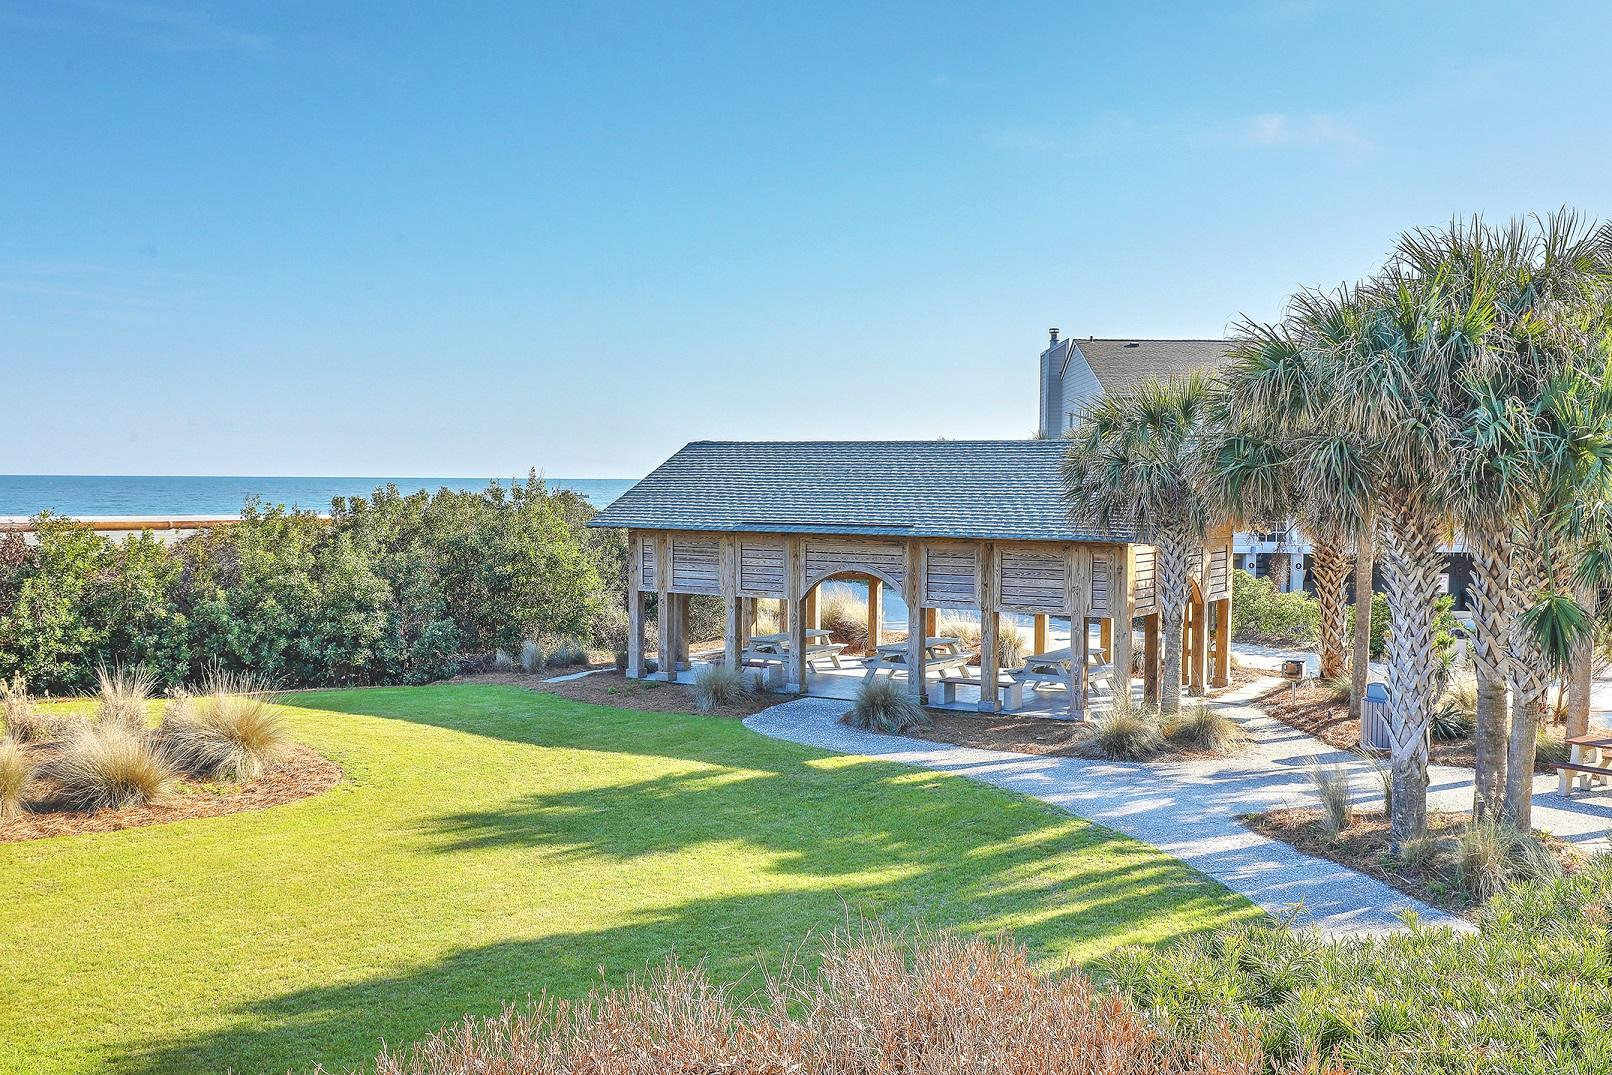 Wild Dunes Homes For Sale - 55 Seagrass, Isle of Palms, SC - 12